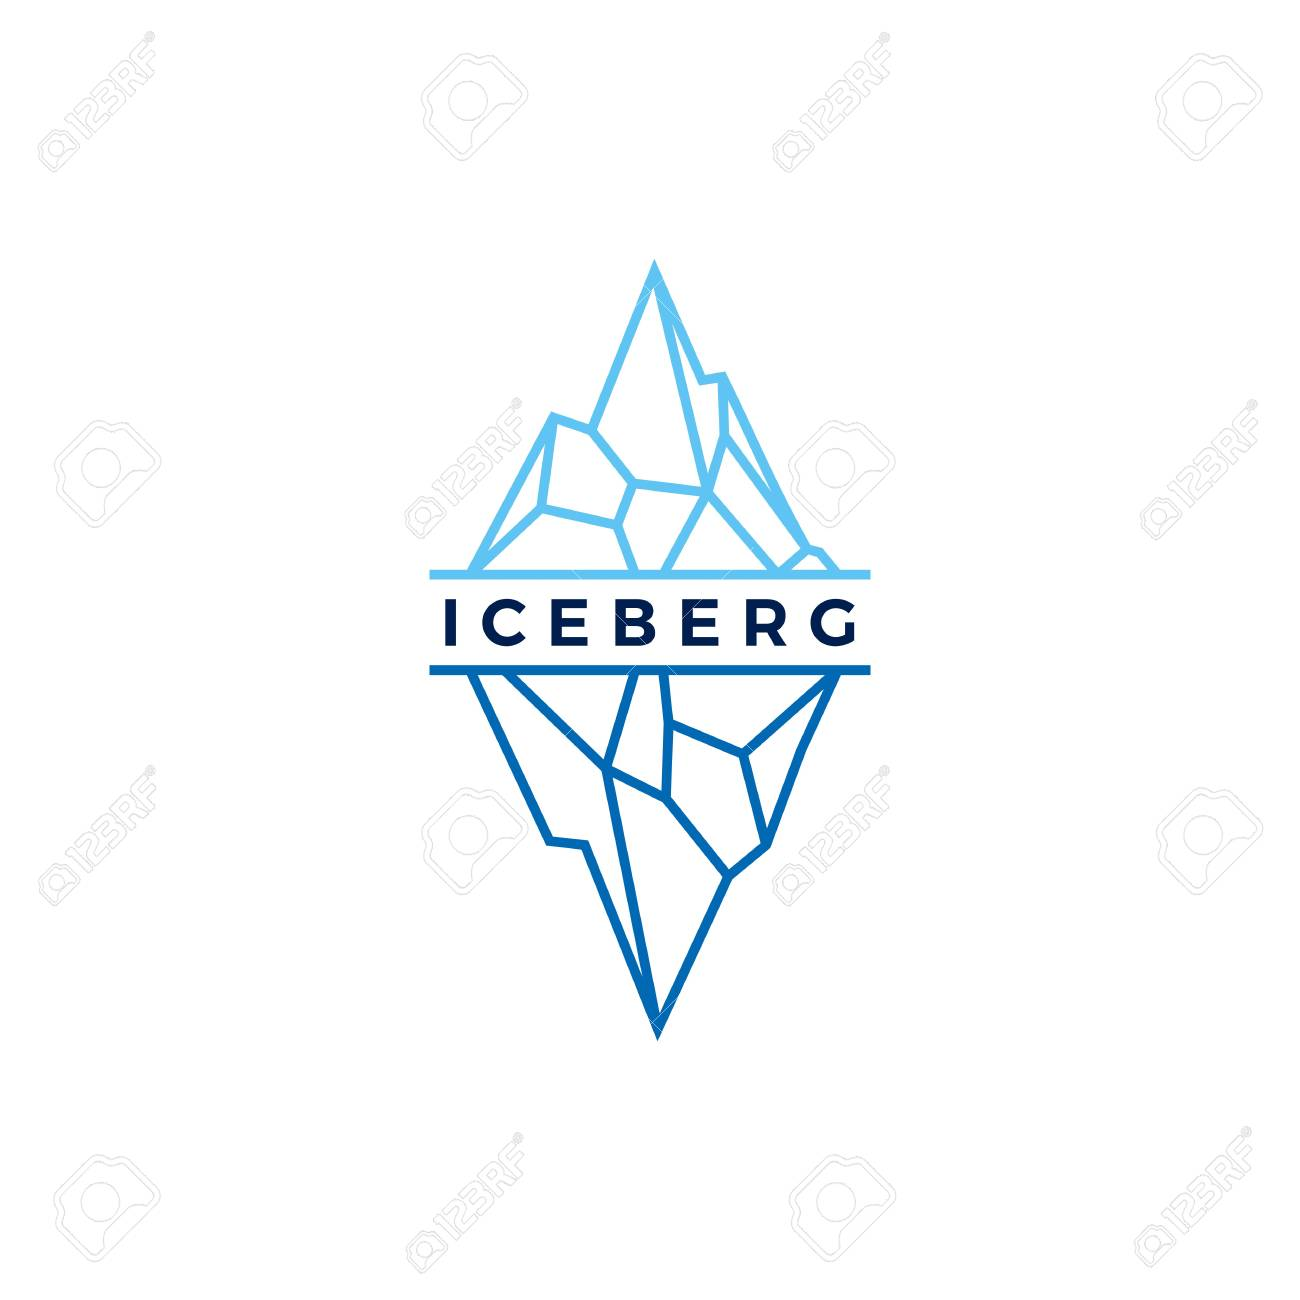 competitive price 2a7a4 41130 iceberg logo geometric line outline monoline illustration